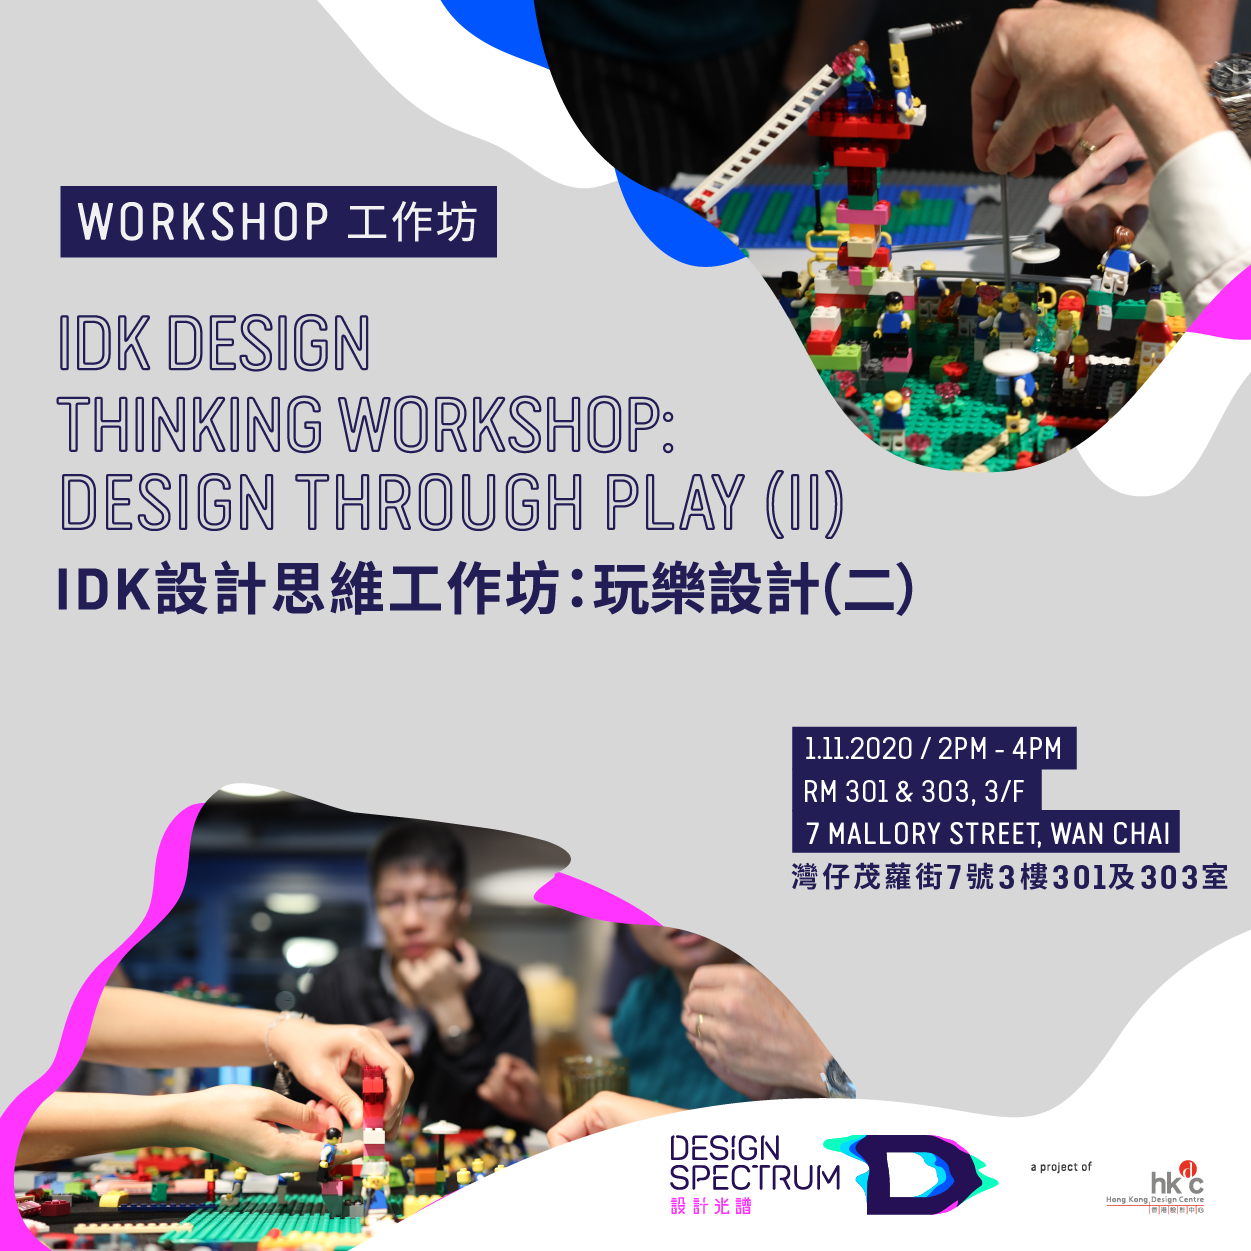 Design Spectrumidk-design-thinking-workshops-designing-through-play-2